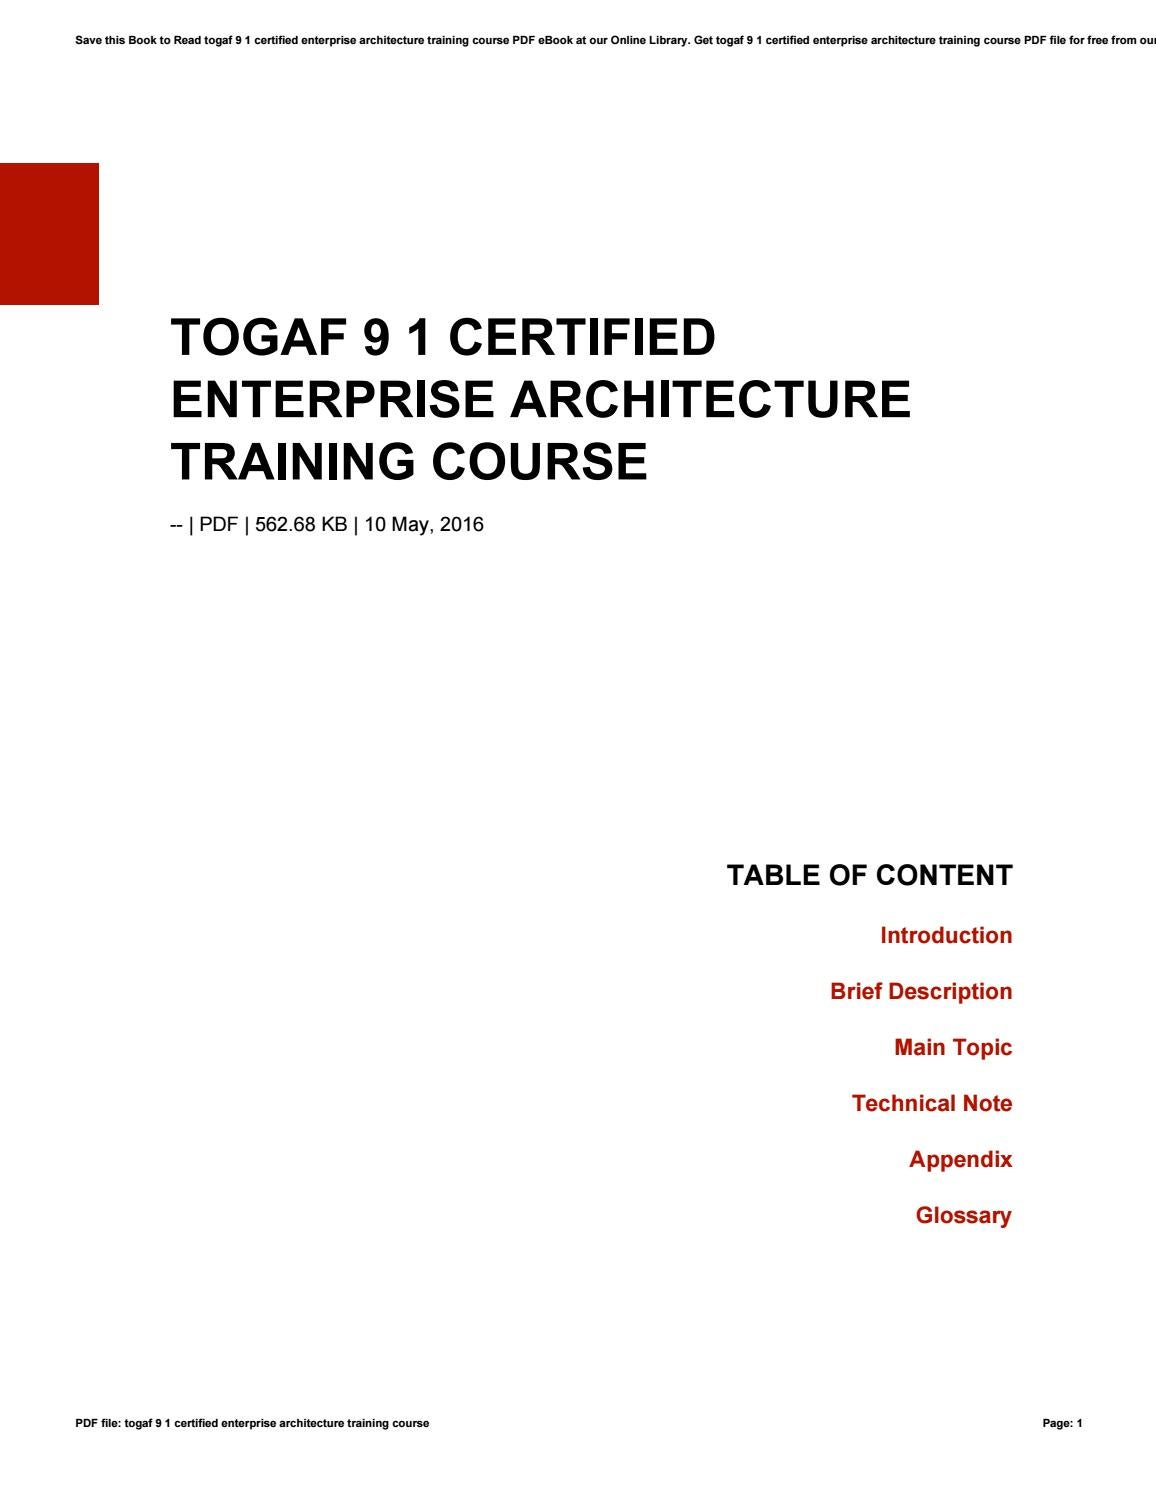 Togaf 9 1 Certified Enterprise Architecture Training Course By O552